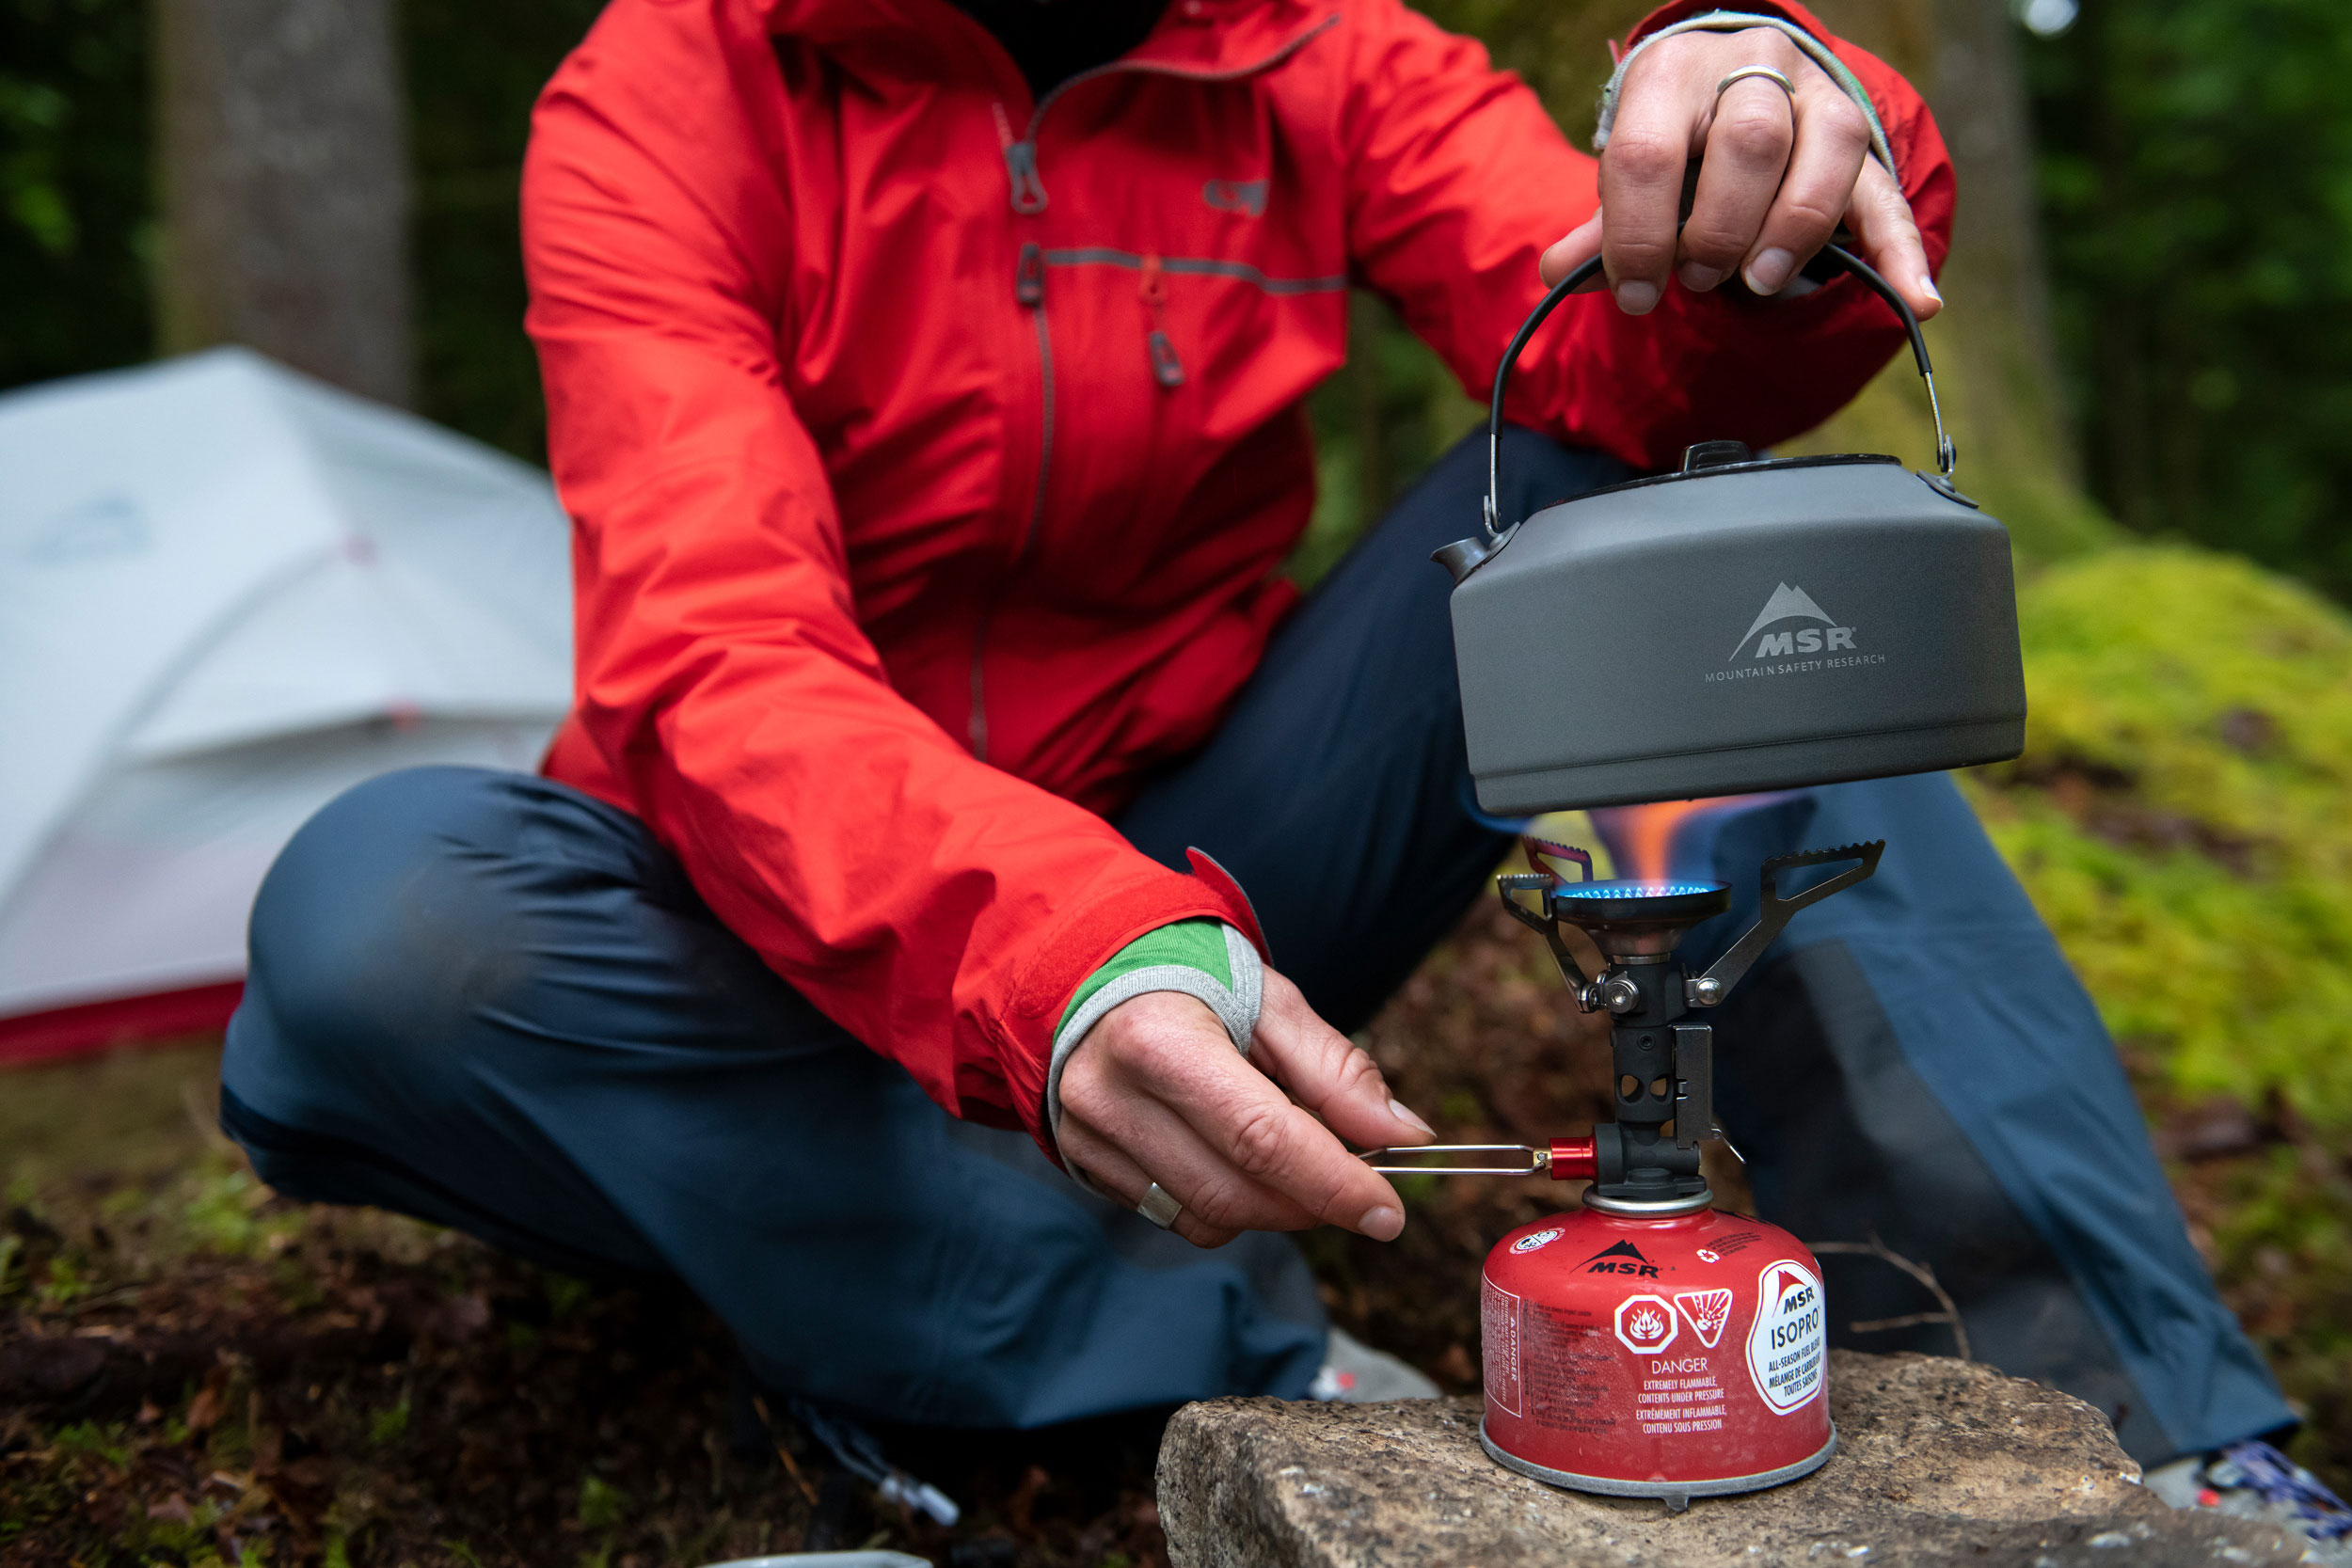 msr pocketrocket deluxe - best backpacking stove